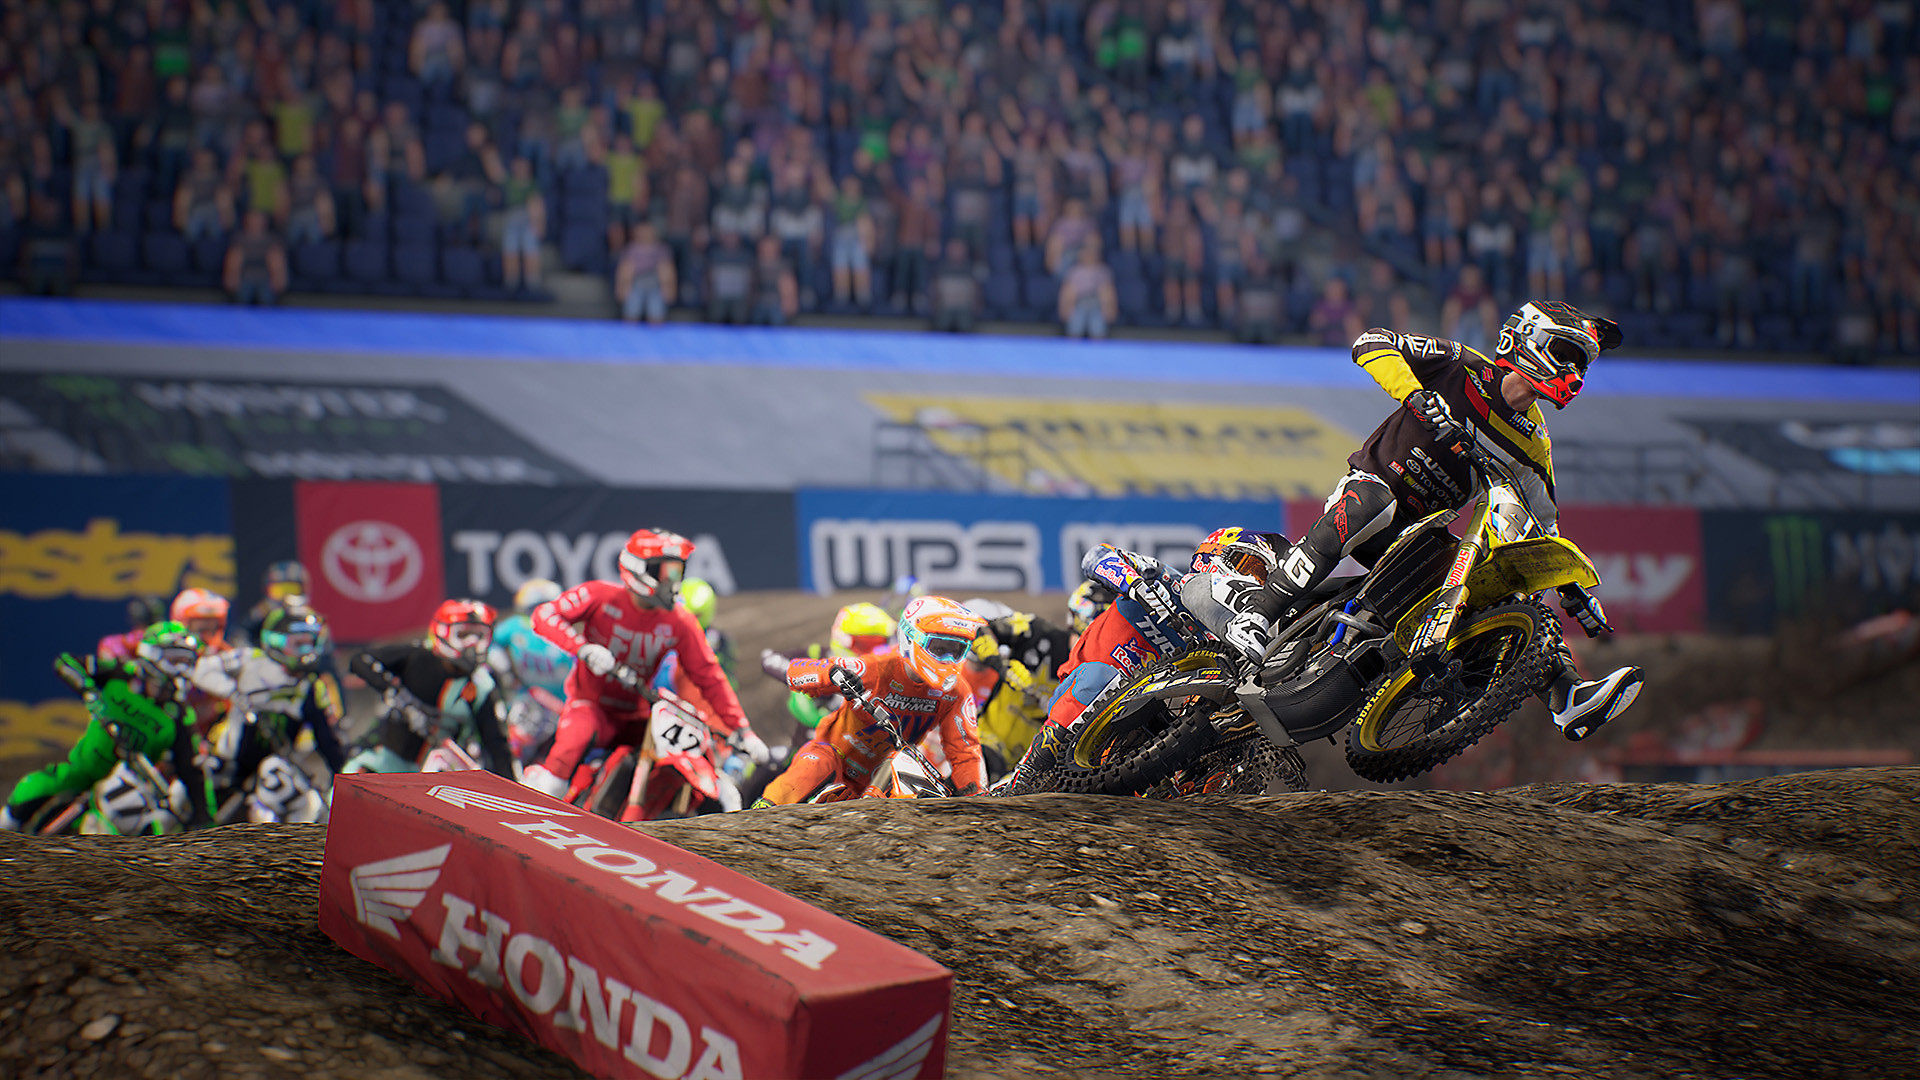 Monster Energy Supercross - The Official Videogame 3 - More Supercross than ever